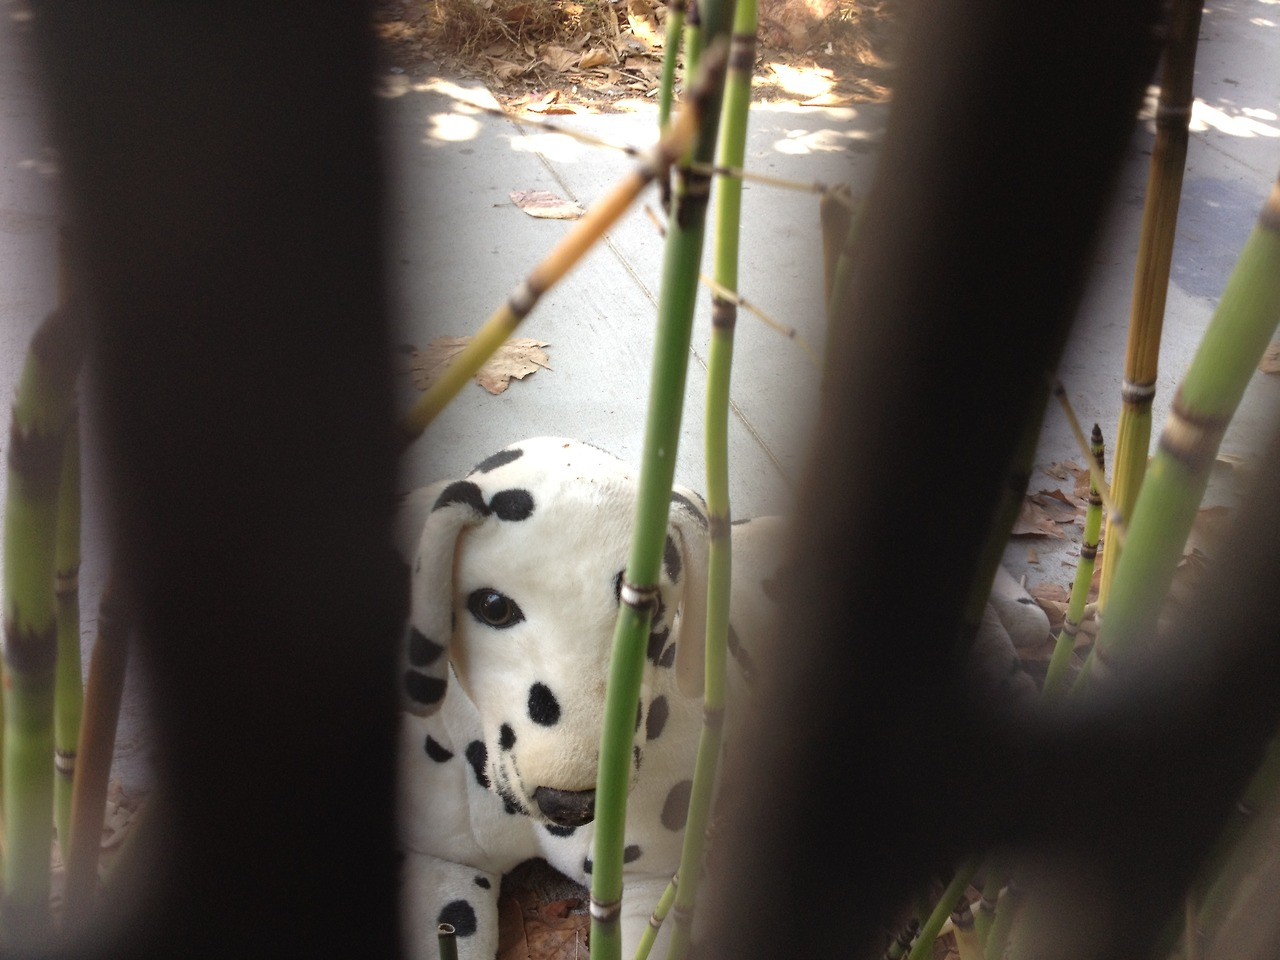 Opened up the blinds to the office today to find a life-sized stuffed Dalmatian posed outside the fence staring back at us. Strange, even for Venice.